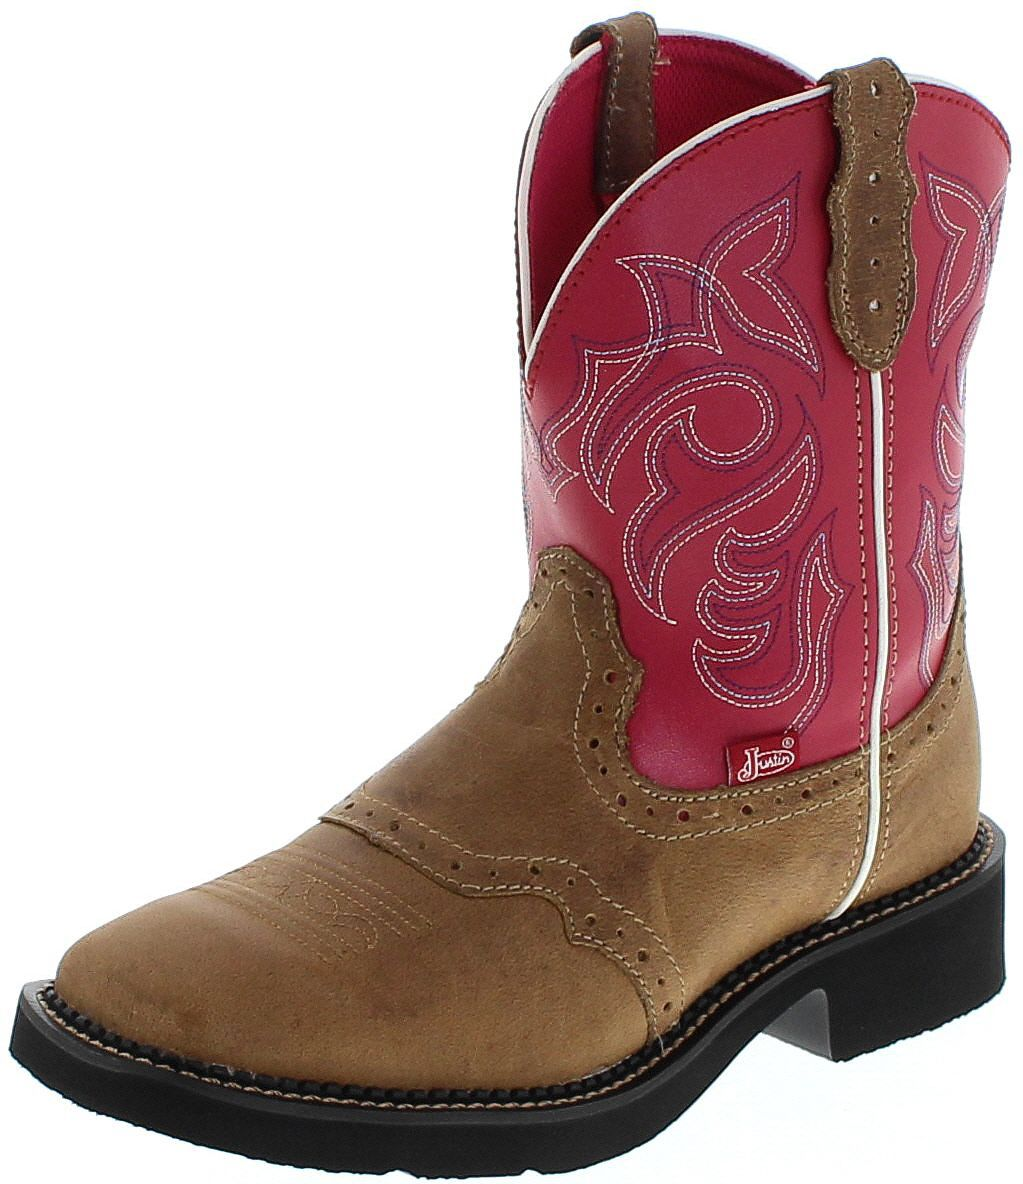 Justin Boots L2926 Western riding boots - brown red